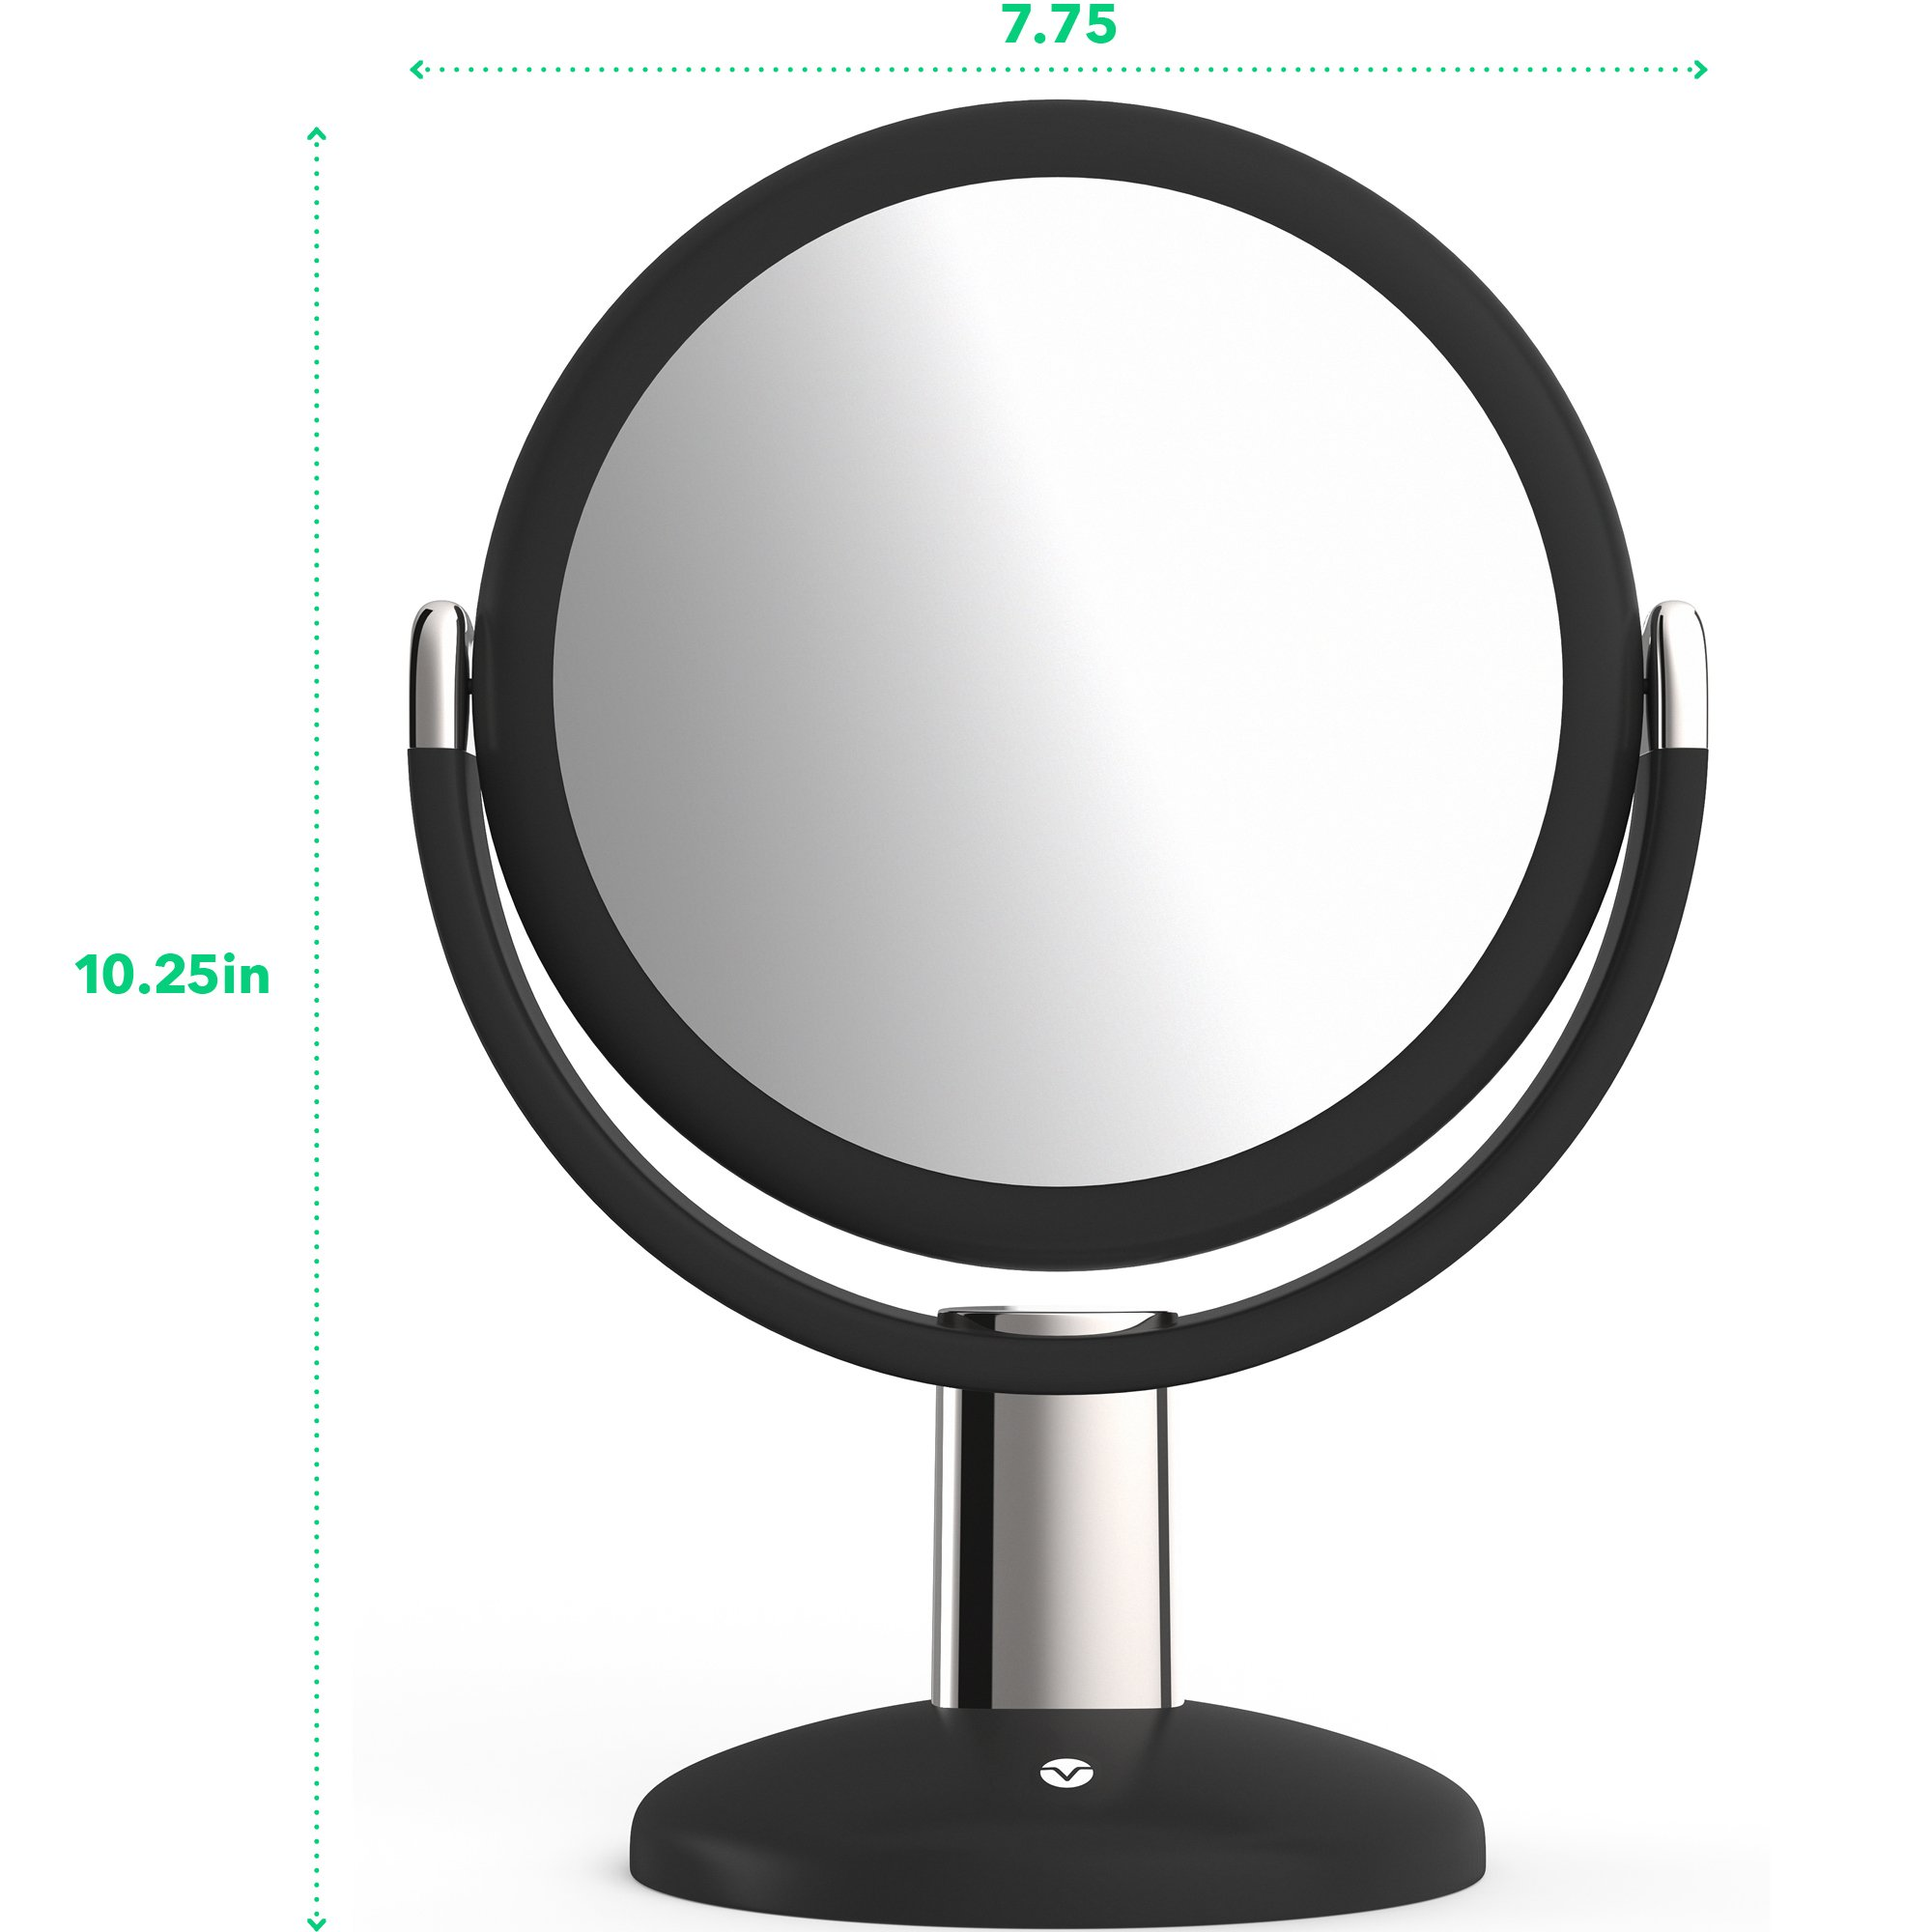 Vremi 10x Magnified Vanity Mirror – 7 Inch Round Makeup Cosmetic Mirror for Bathroom or Bedroom Table Top – Portable…